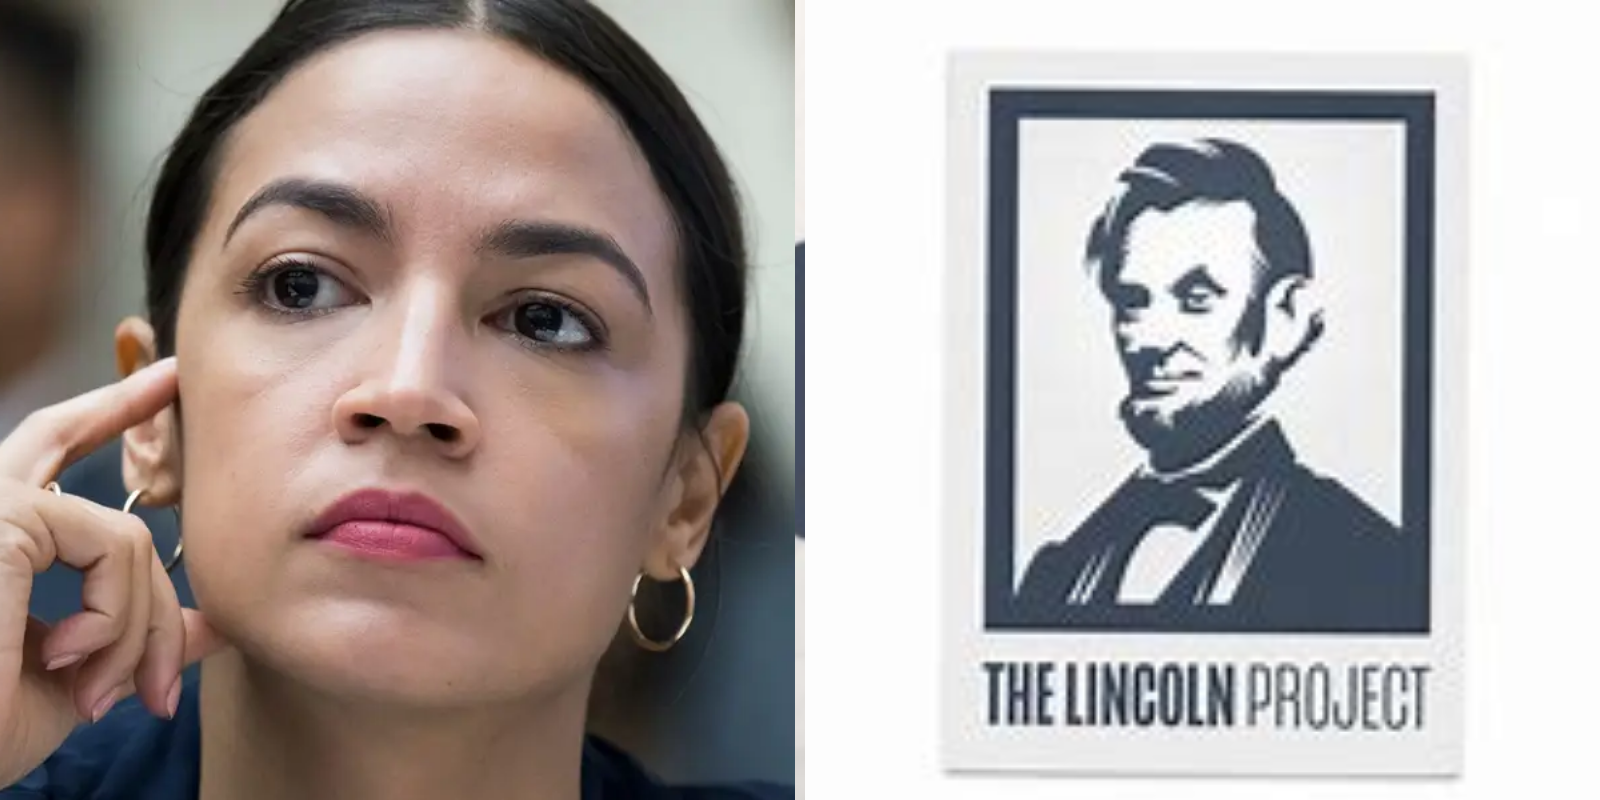 AOC tells never-Trump Lincoln Project to 'take the L'